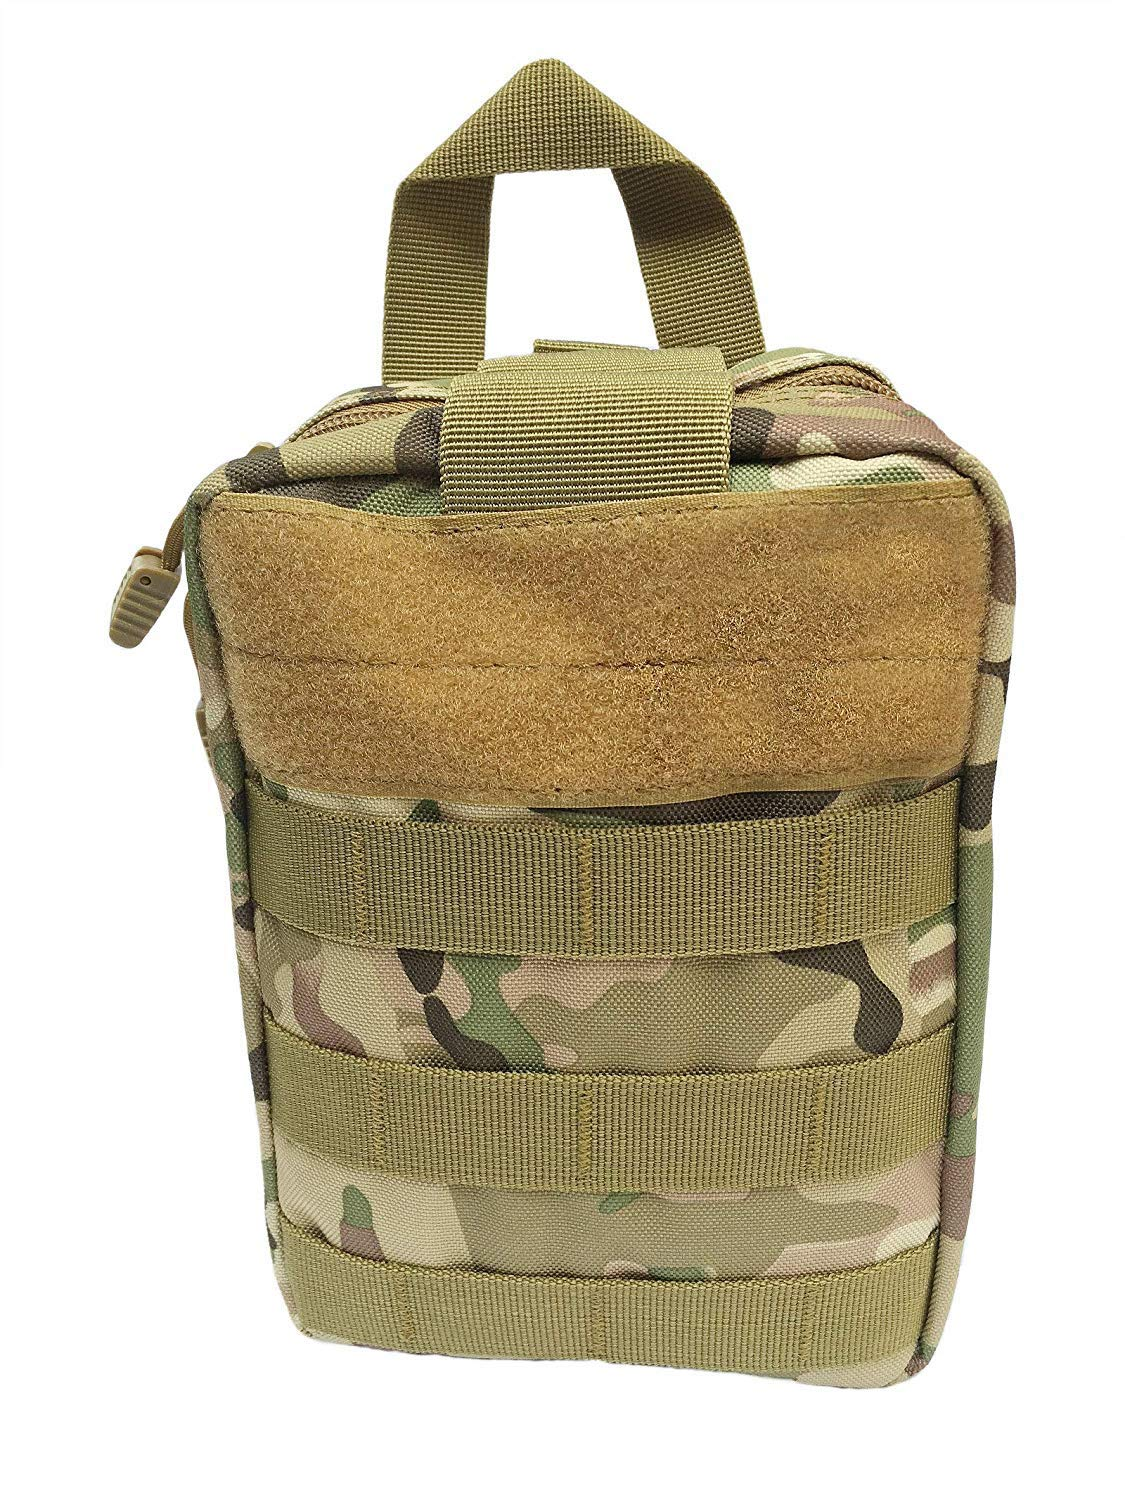 WildCow Emergency Pet First Aid Kit for Dog and Cat 40 Pieces (Camo Tan) by WildCow